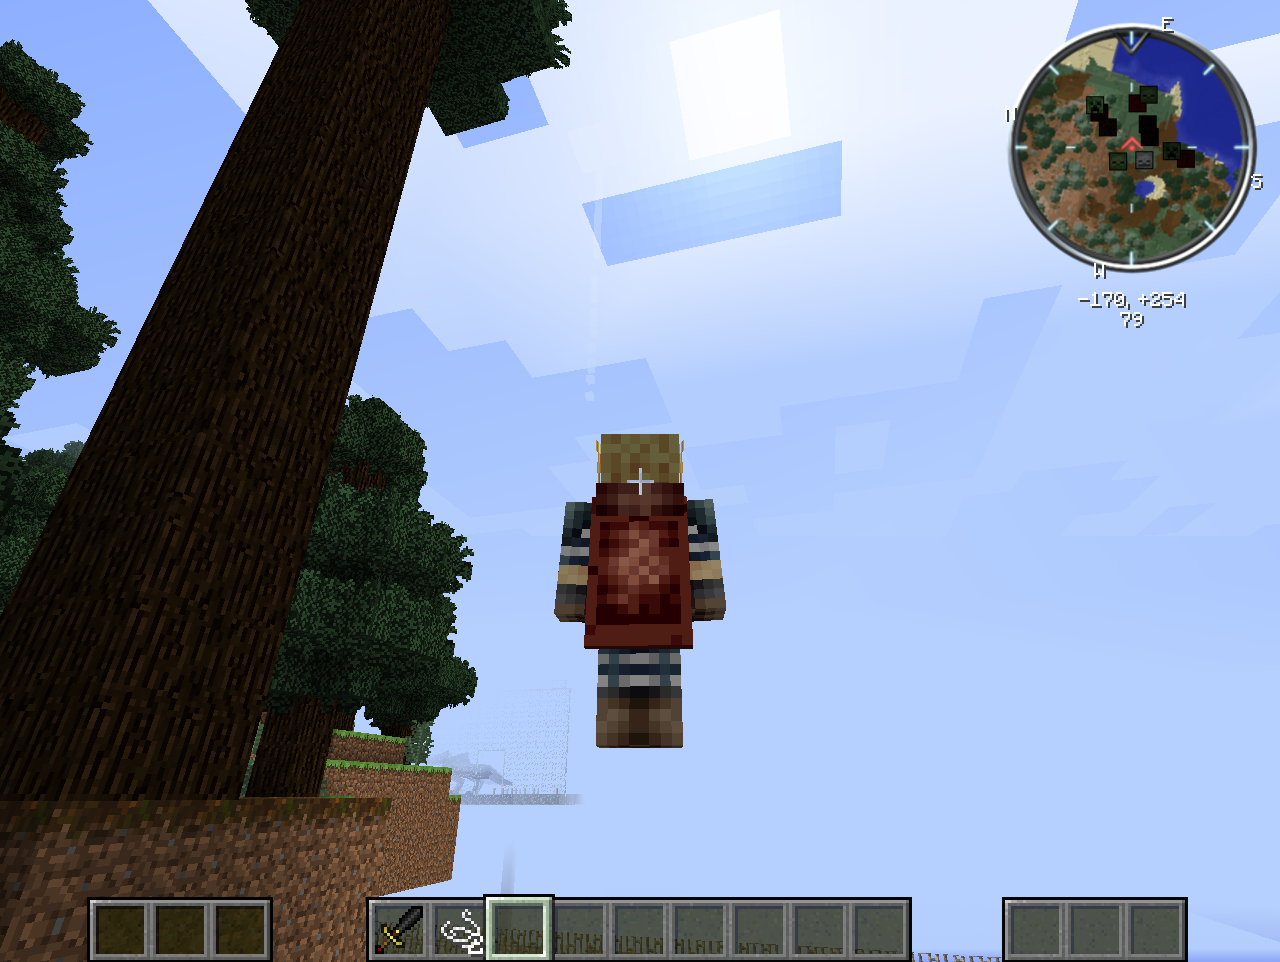 1 7 10+] Advanced Capes mod (664000+ Downloads!) - Minecraft